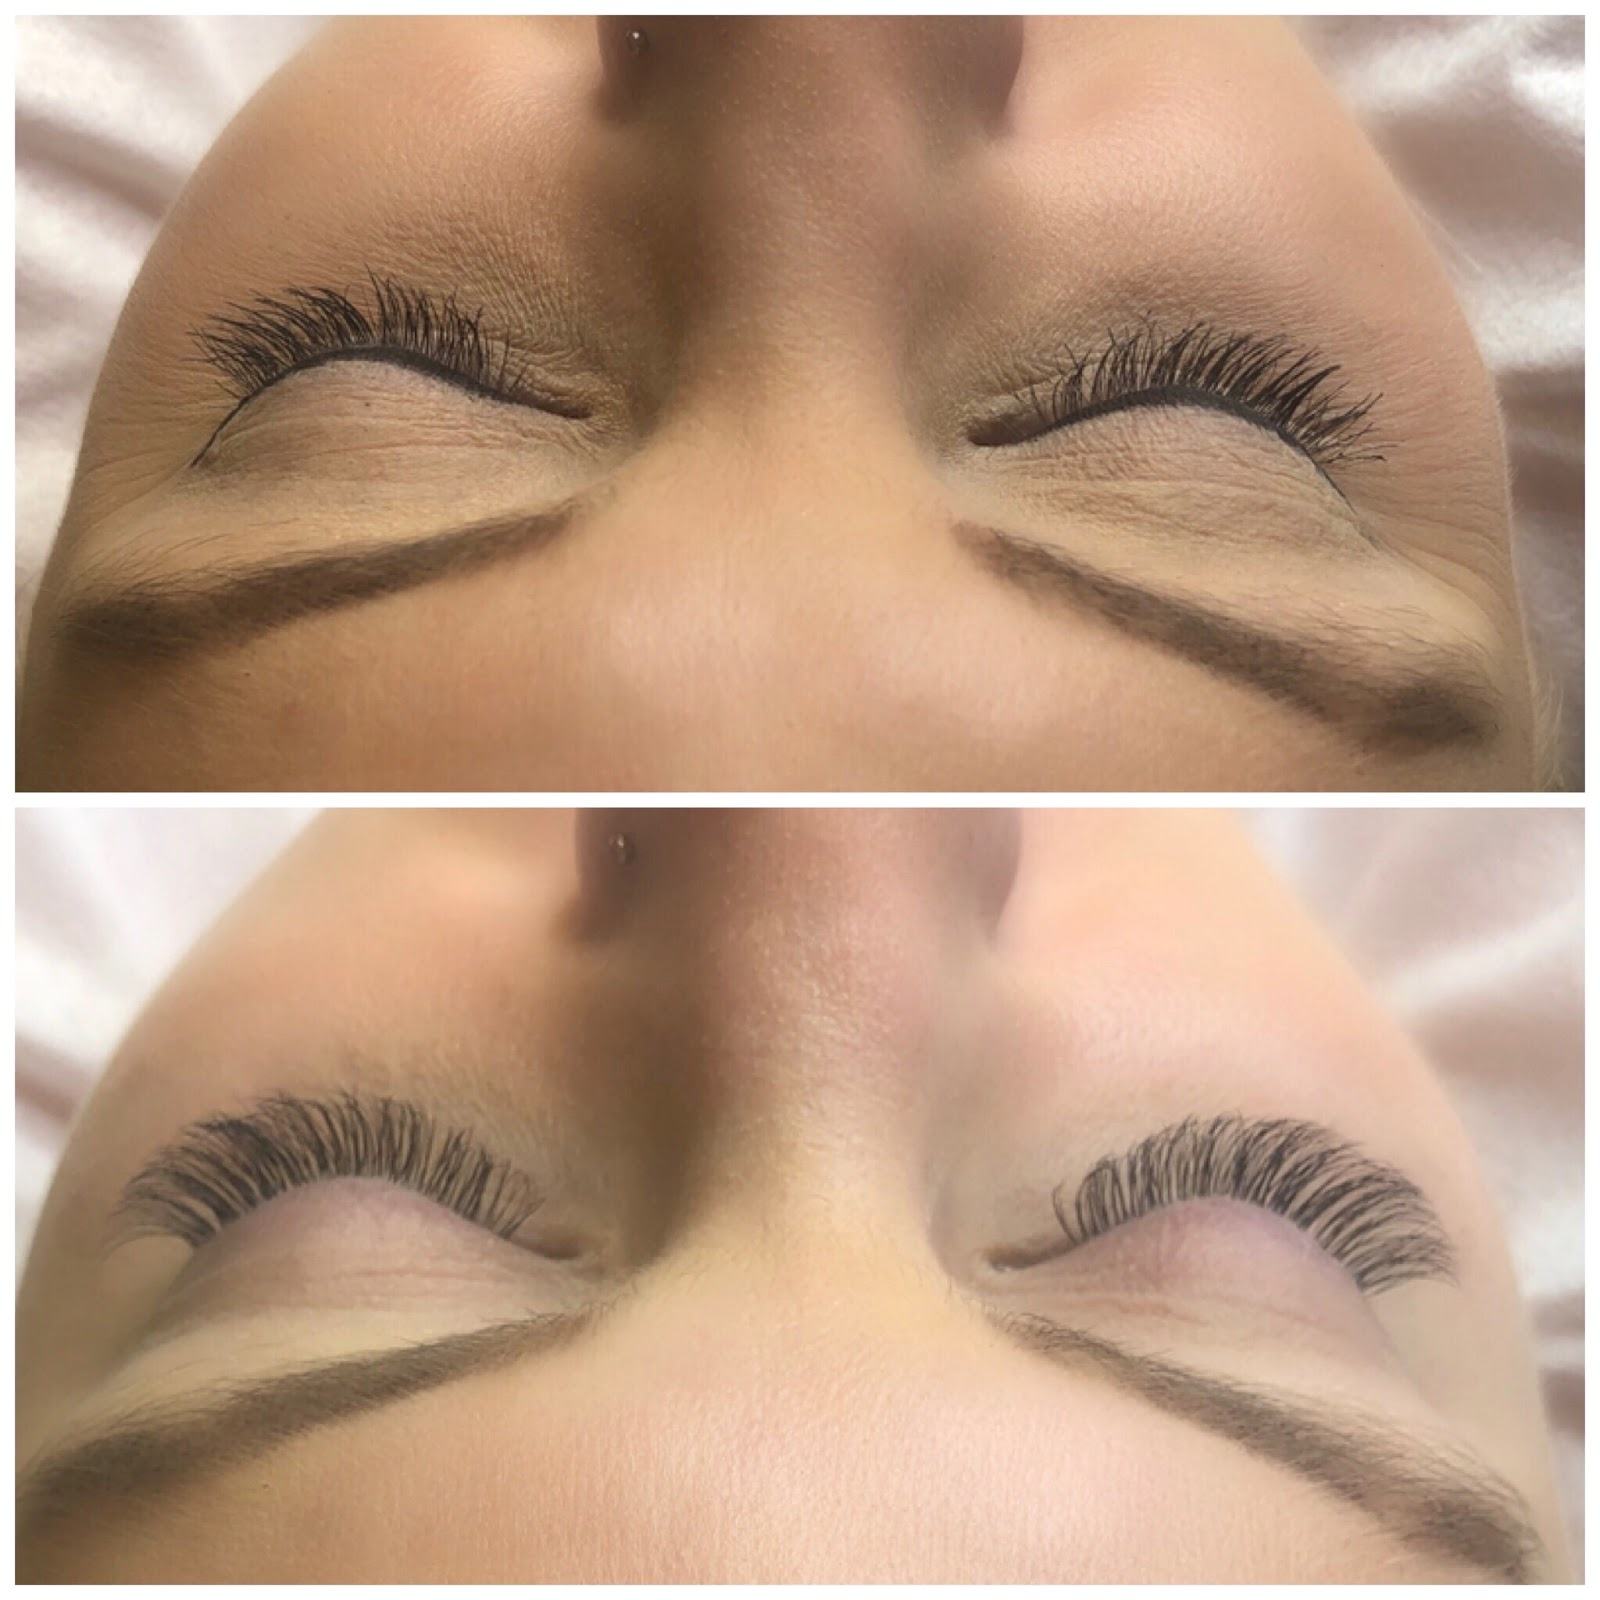 9ff3ea0de91 ... fashionablylateblonde@mail.com because I will be doing a HUGE Q&A post  in the next couple weeks. Seriously, ask me anything about lash extension!!